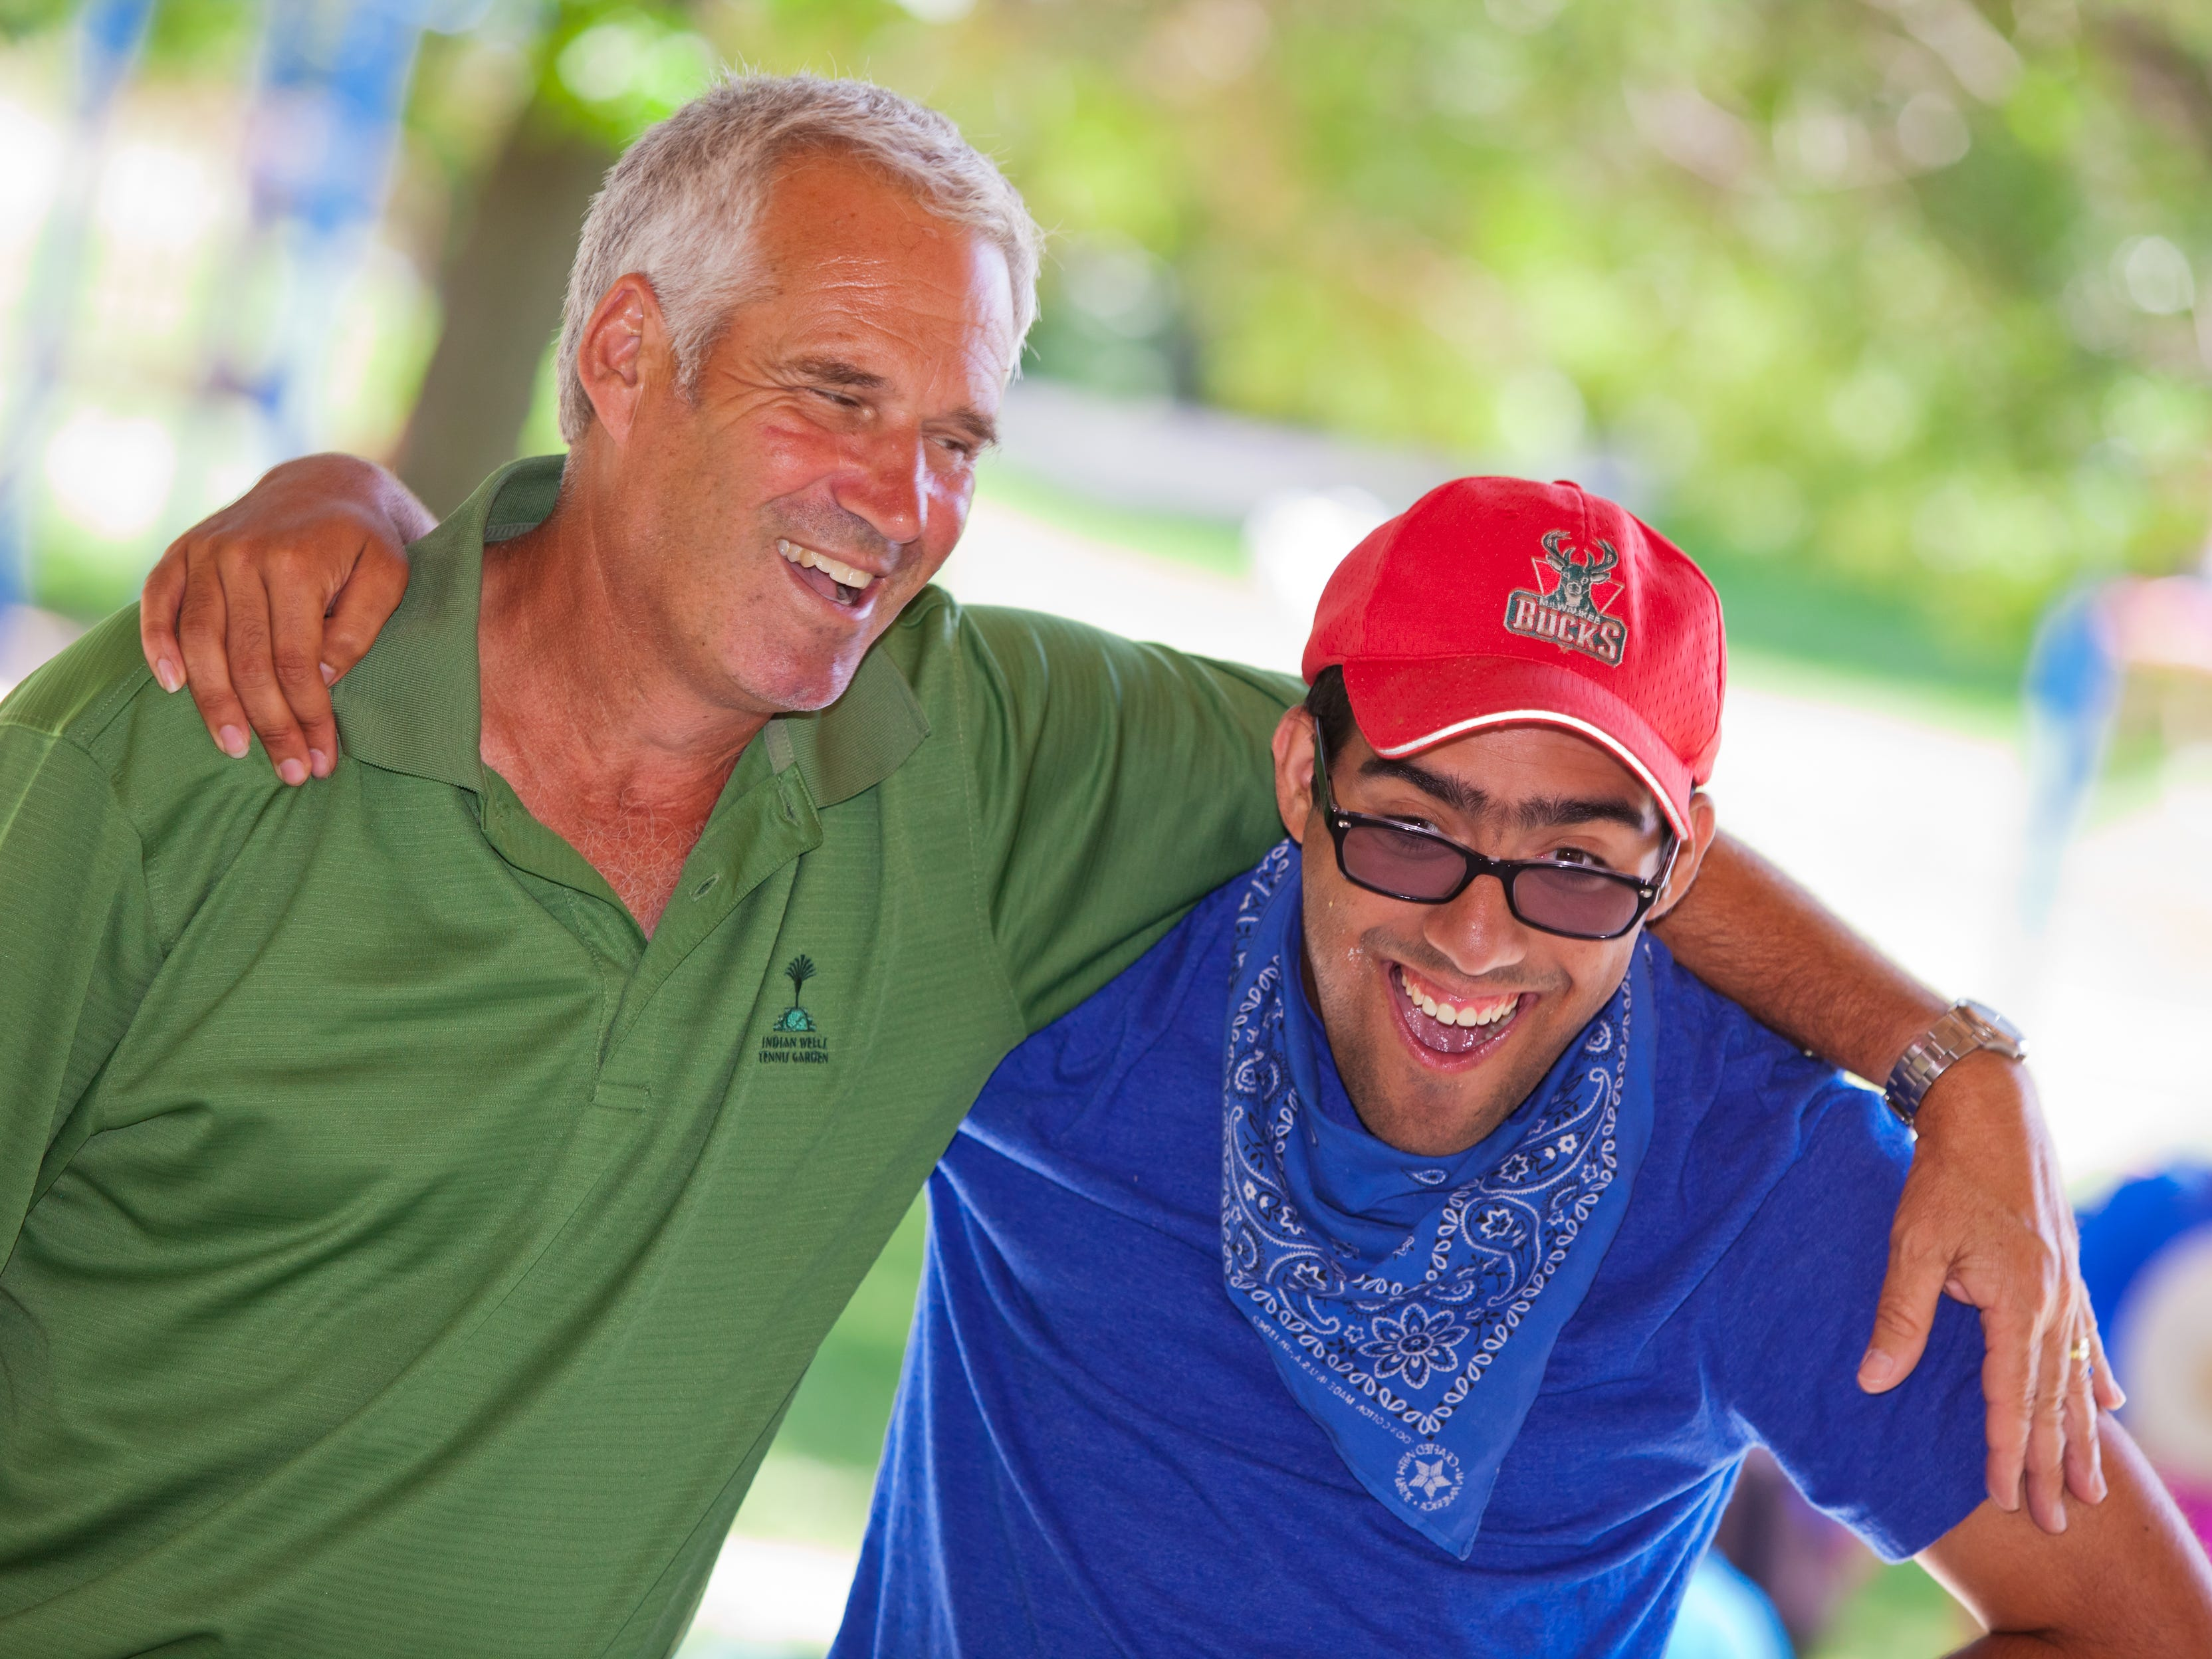 JCC Rainbow Day Camp director Lenny Kass hangs out with camper Michael Torres.